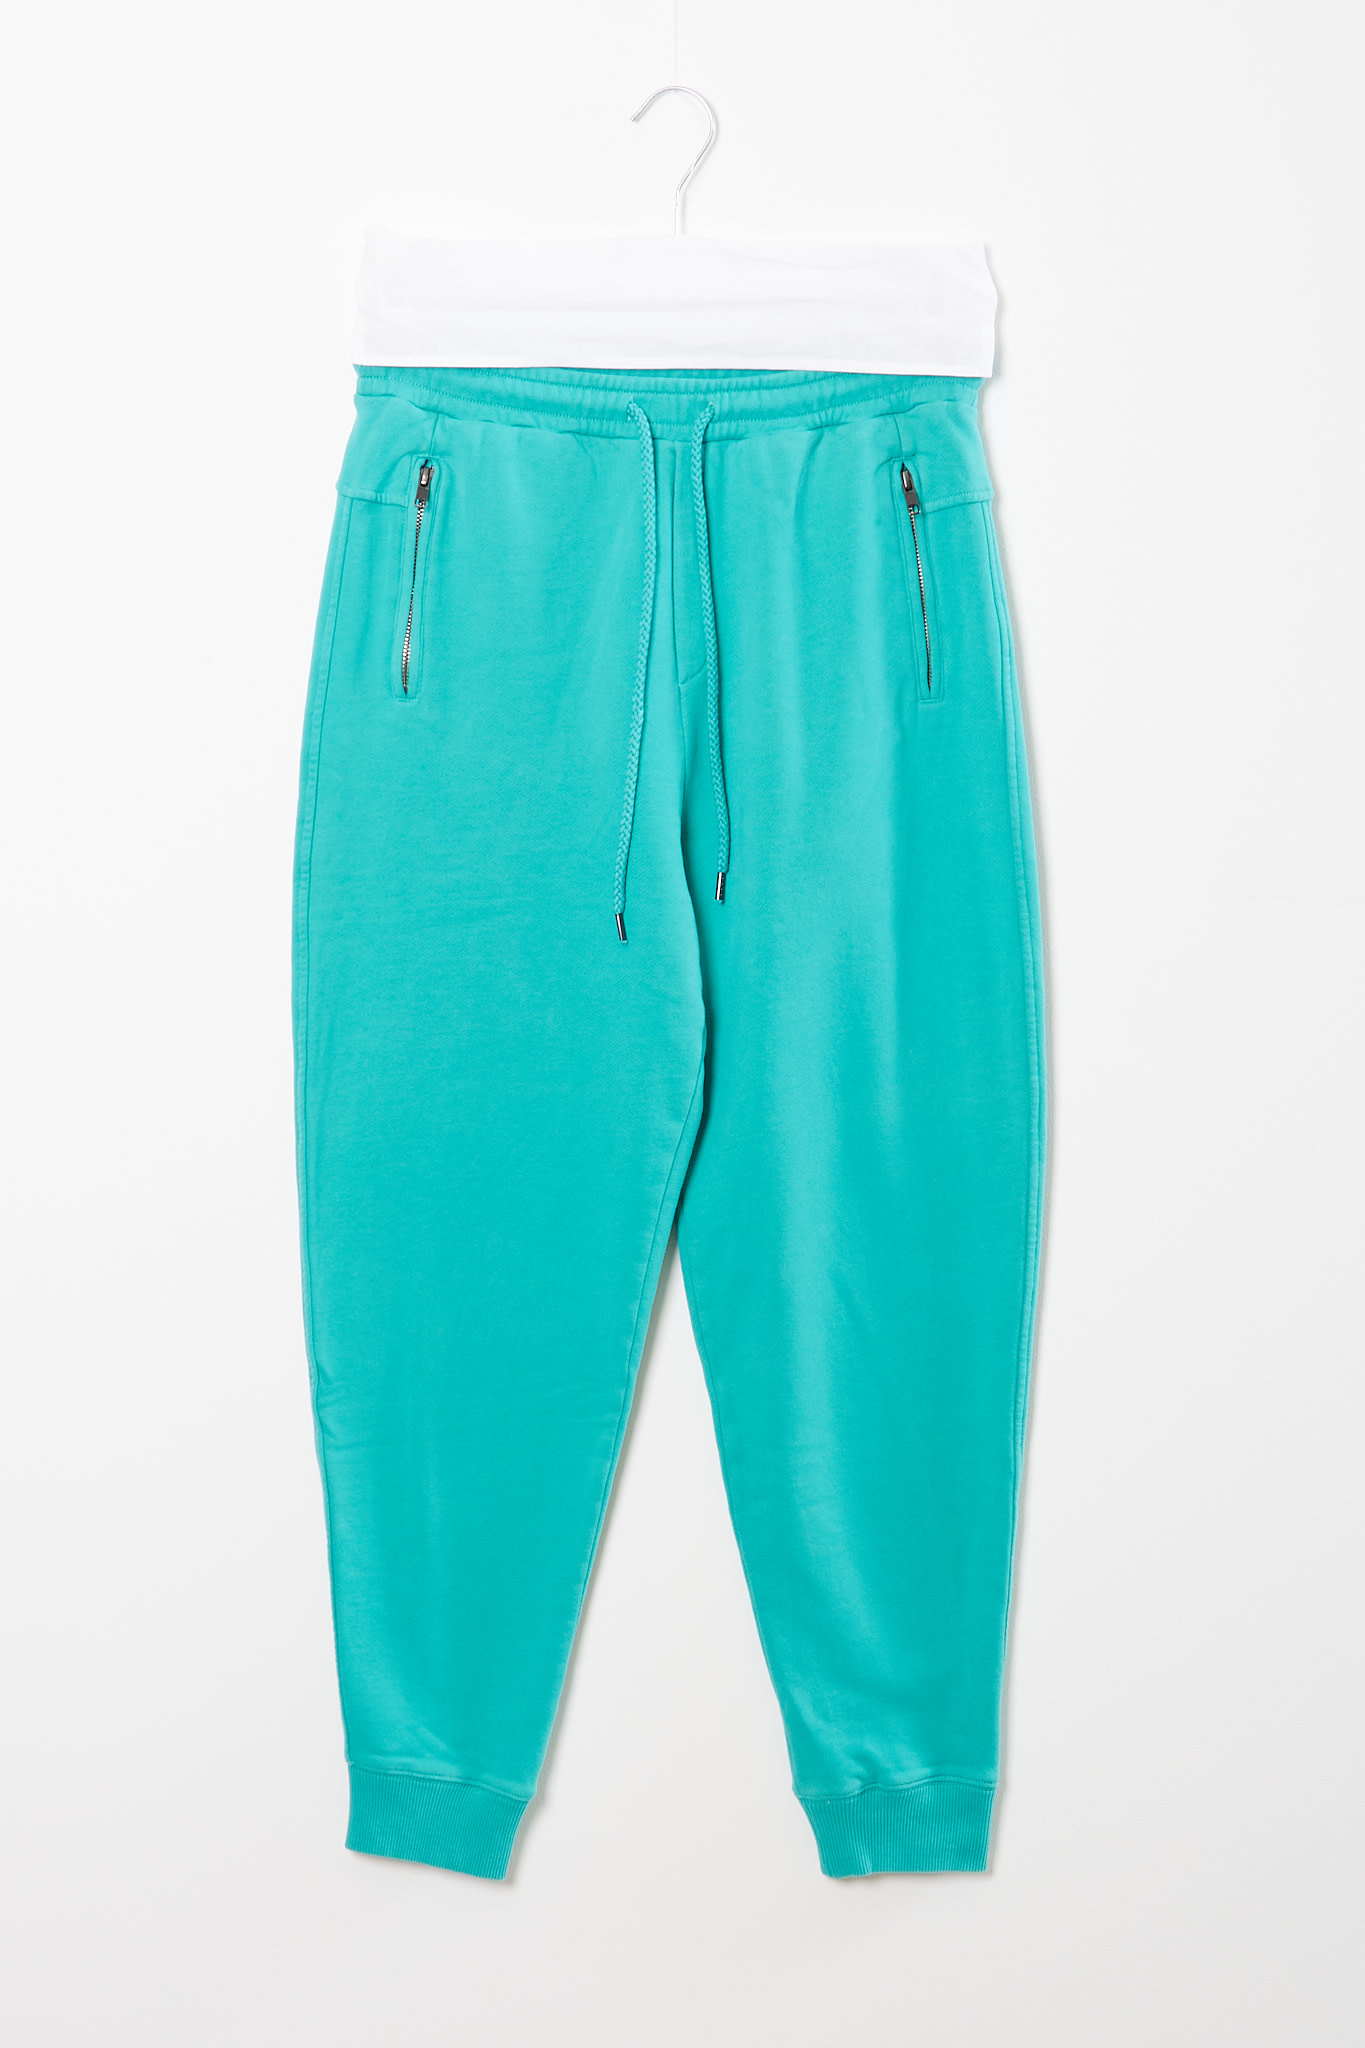 Humanoid - Greco sld trousers